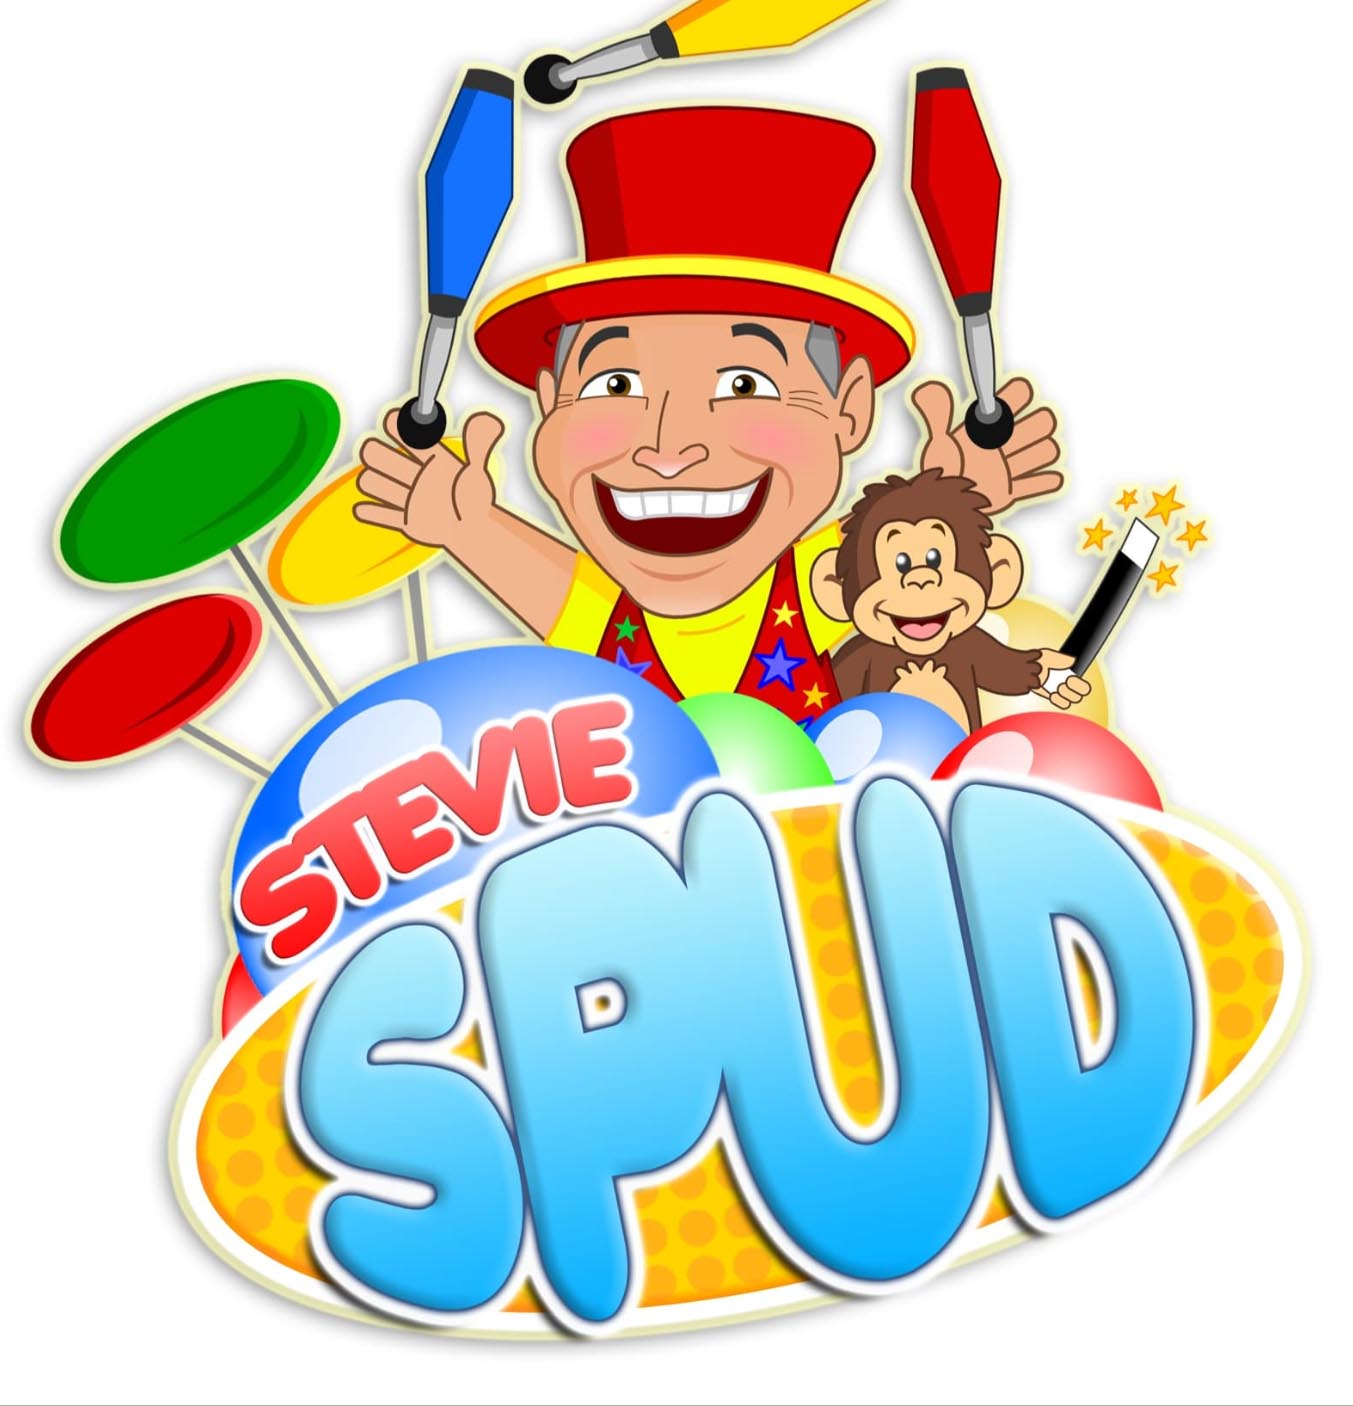 Stevie Spud - Children's Entertainer